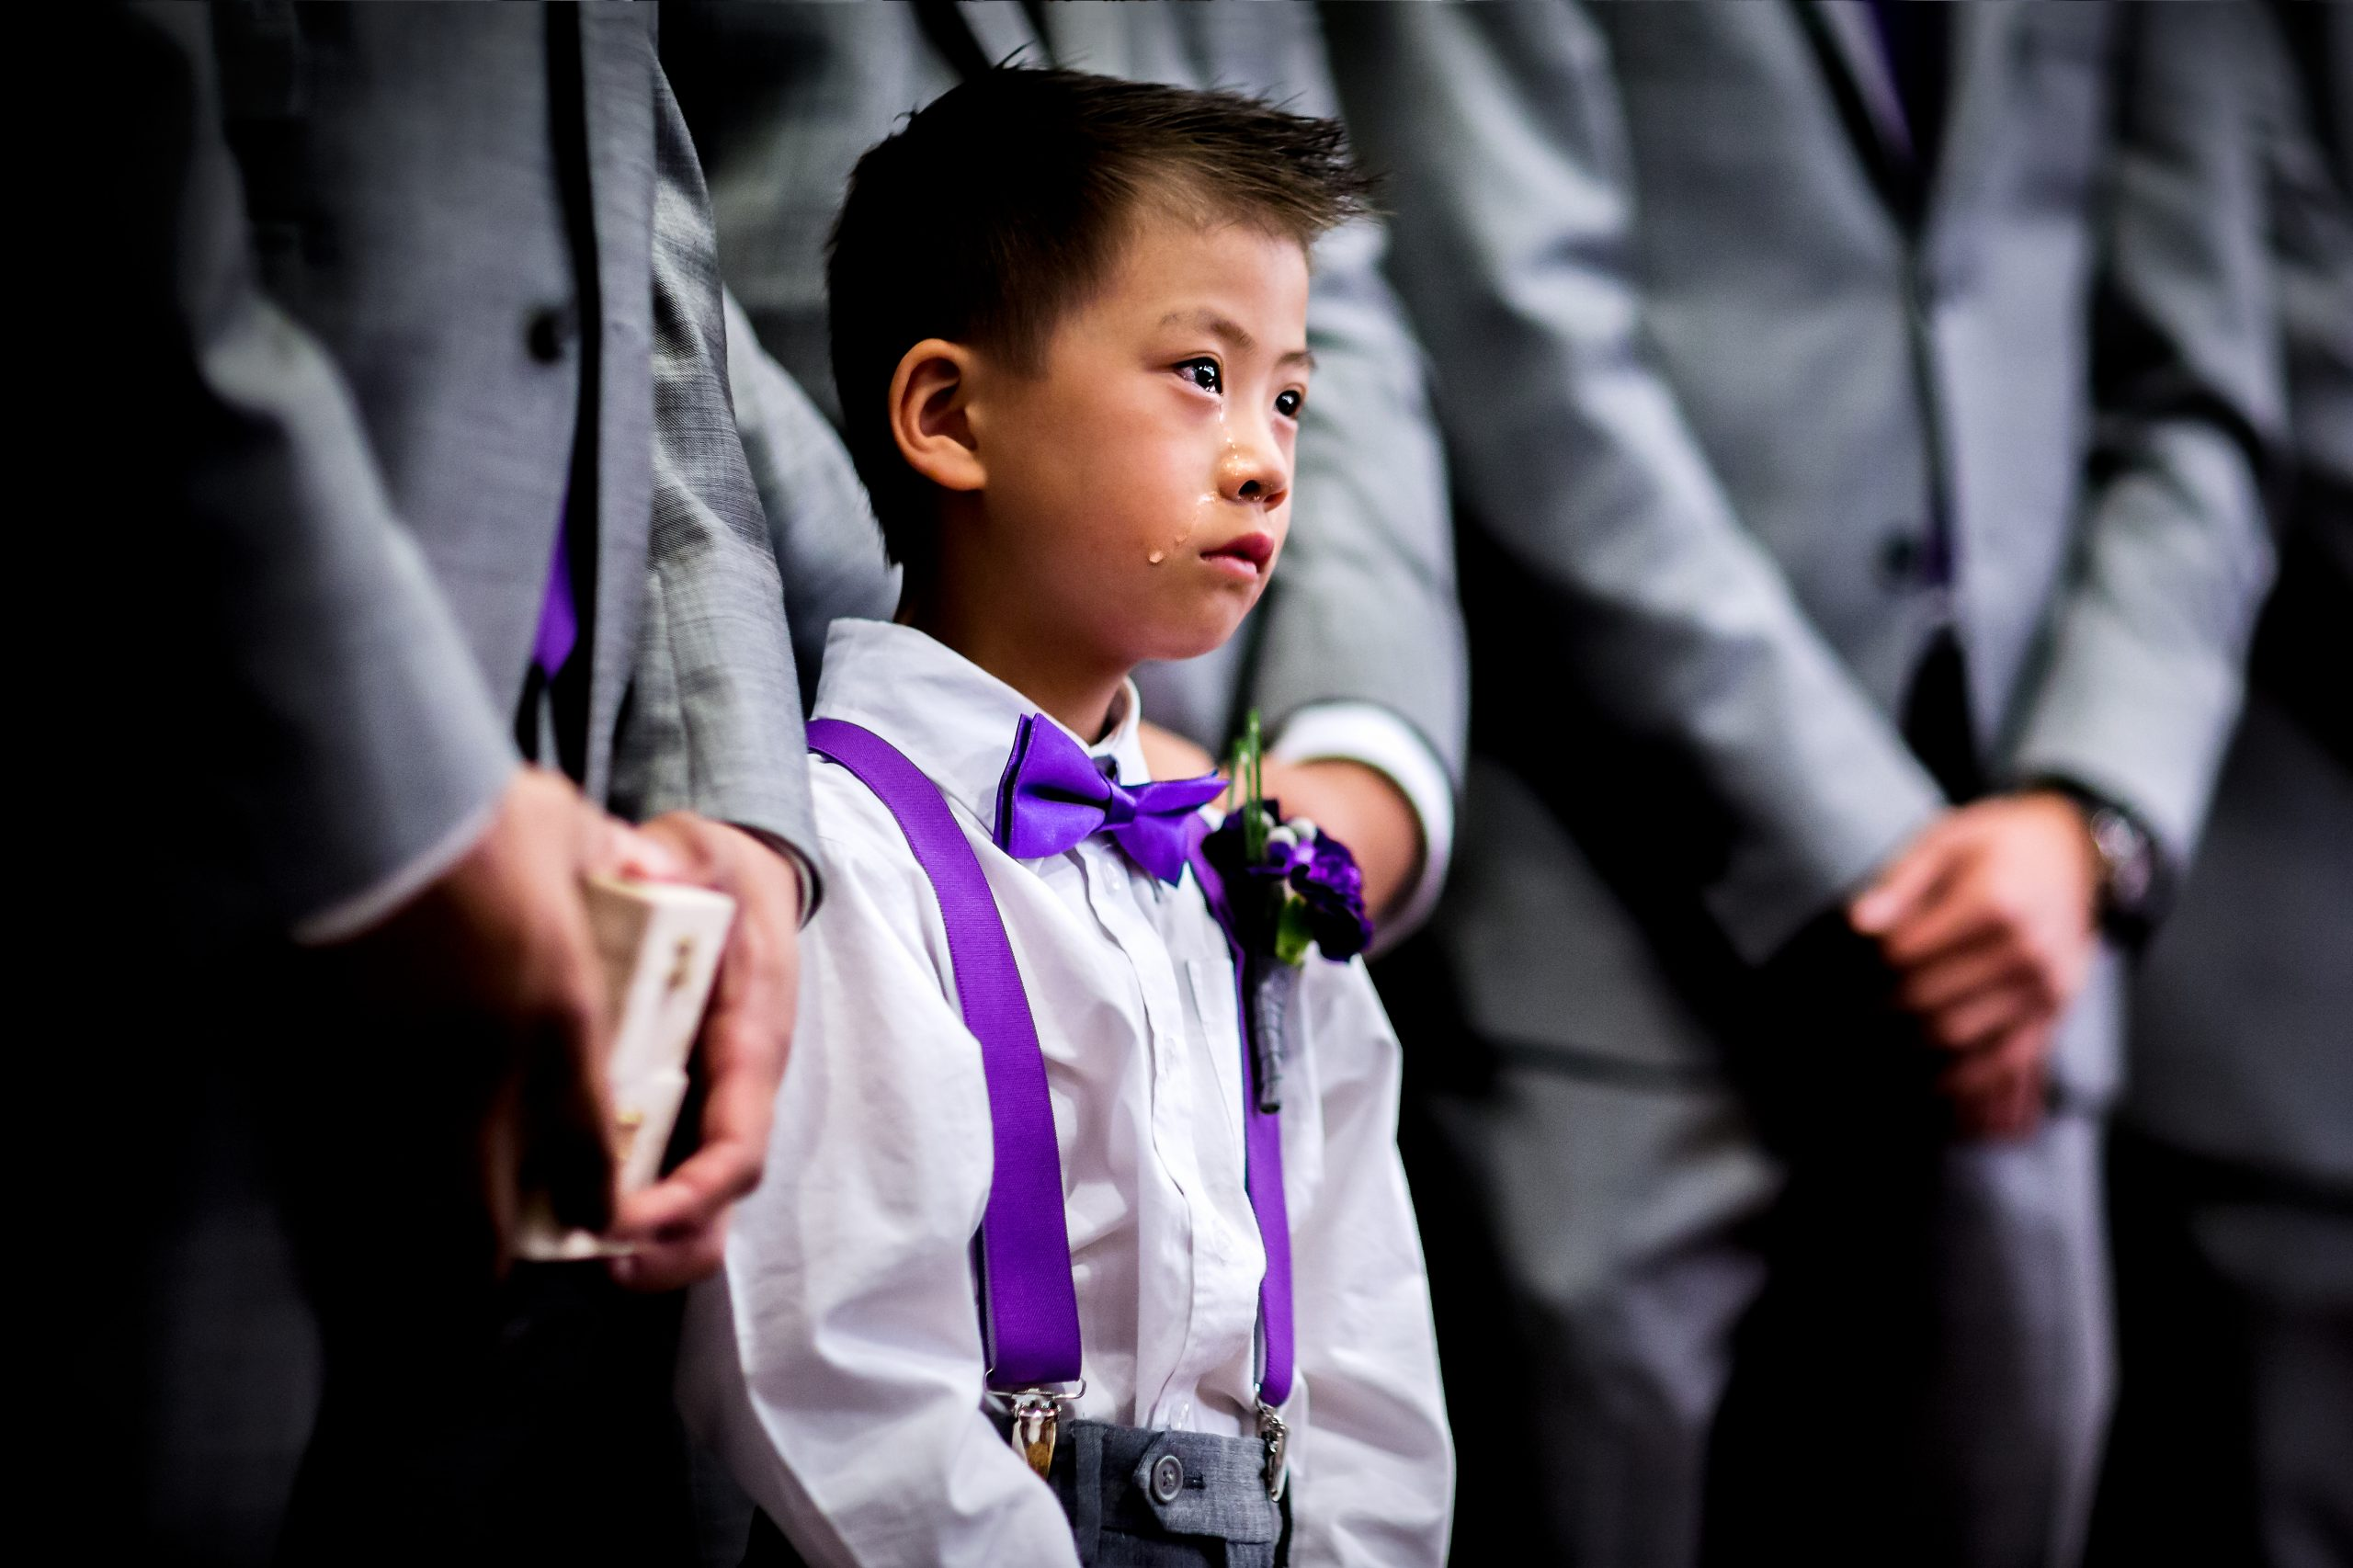 Young boy in tears at wedding ceremony